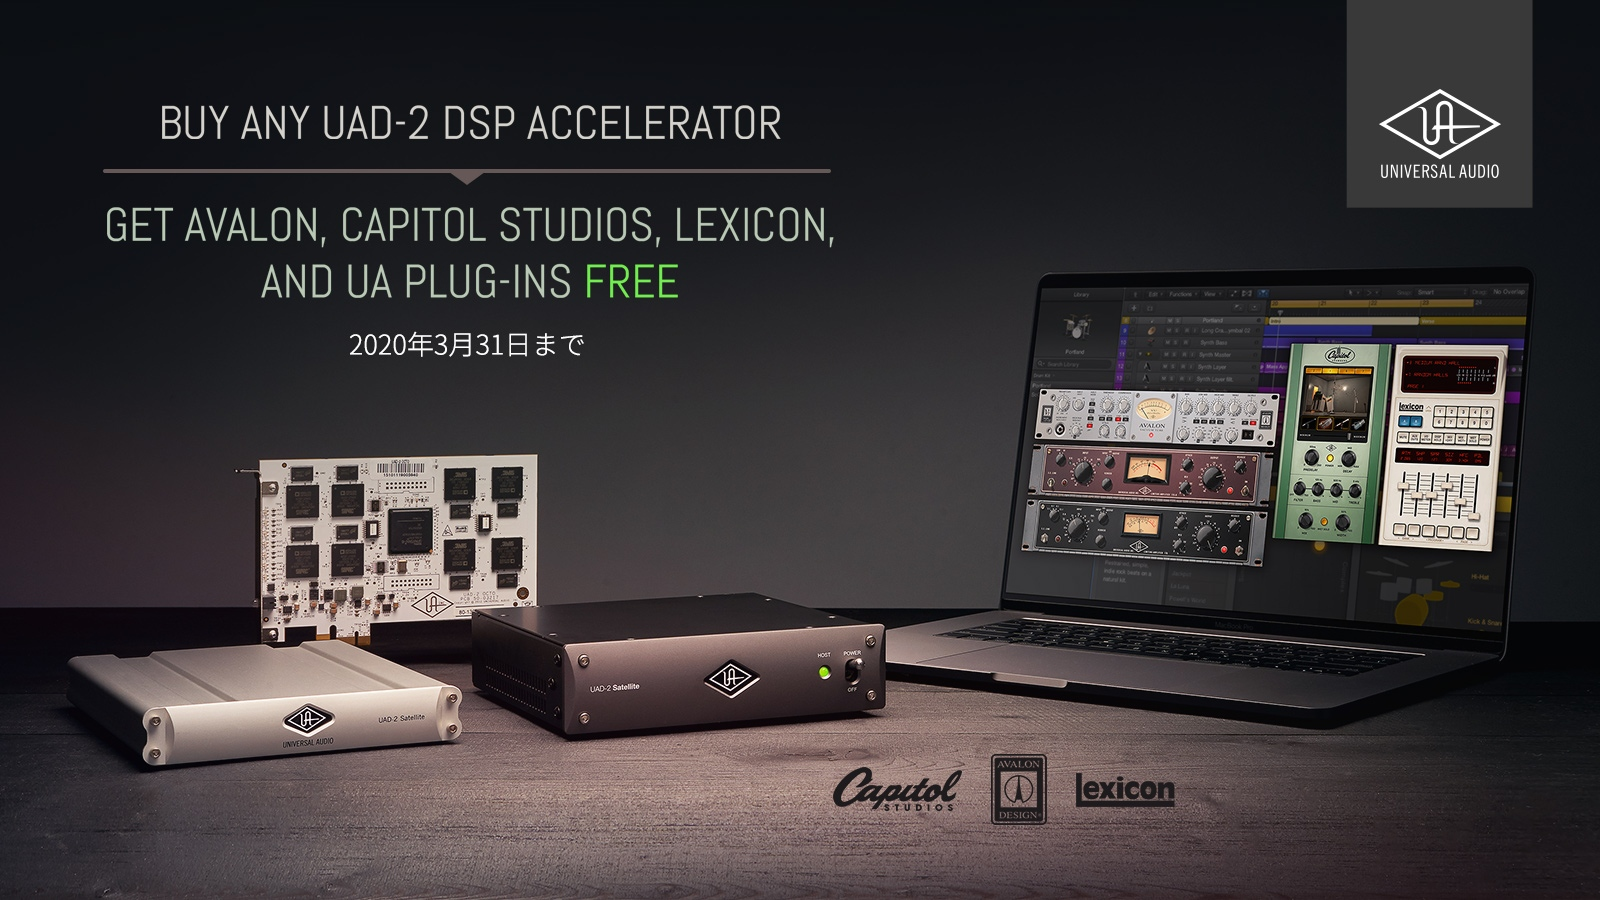 "<h2 class=""title"">UNIVERSAL AUDIO ""UAD ブロックバスター"" プロモーション</h2>"